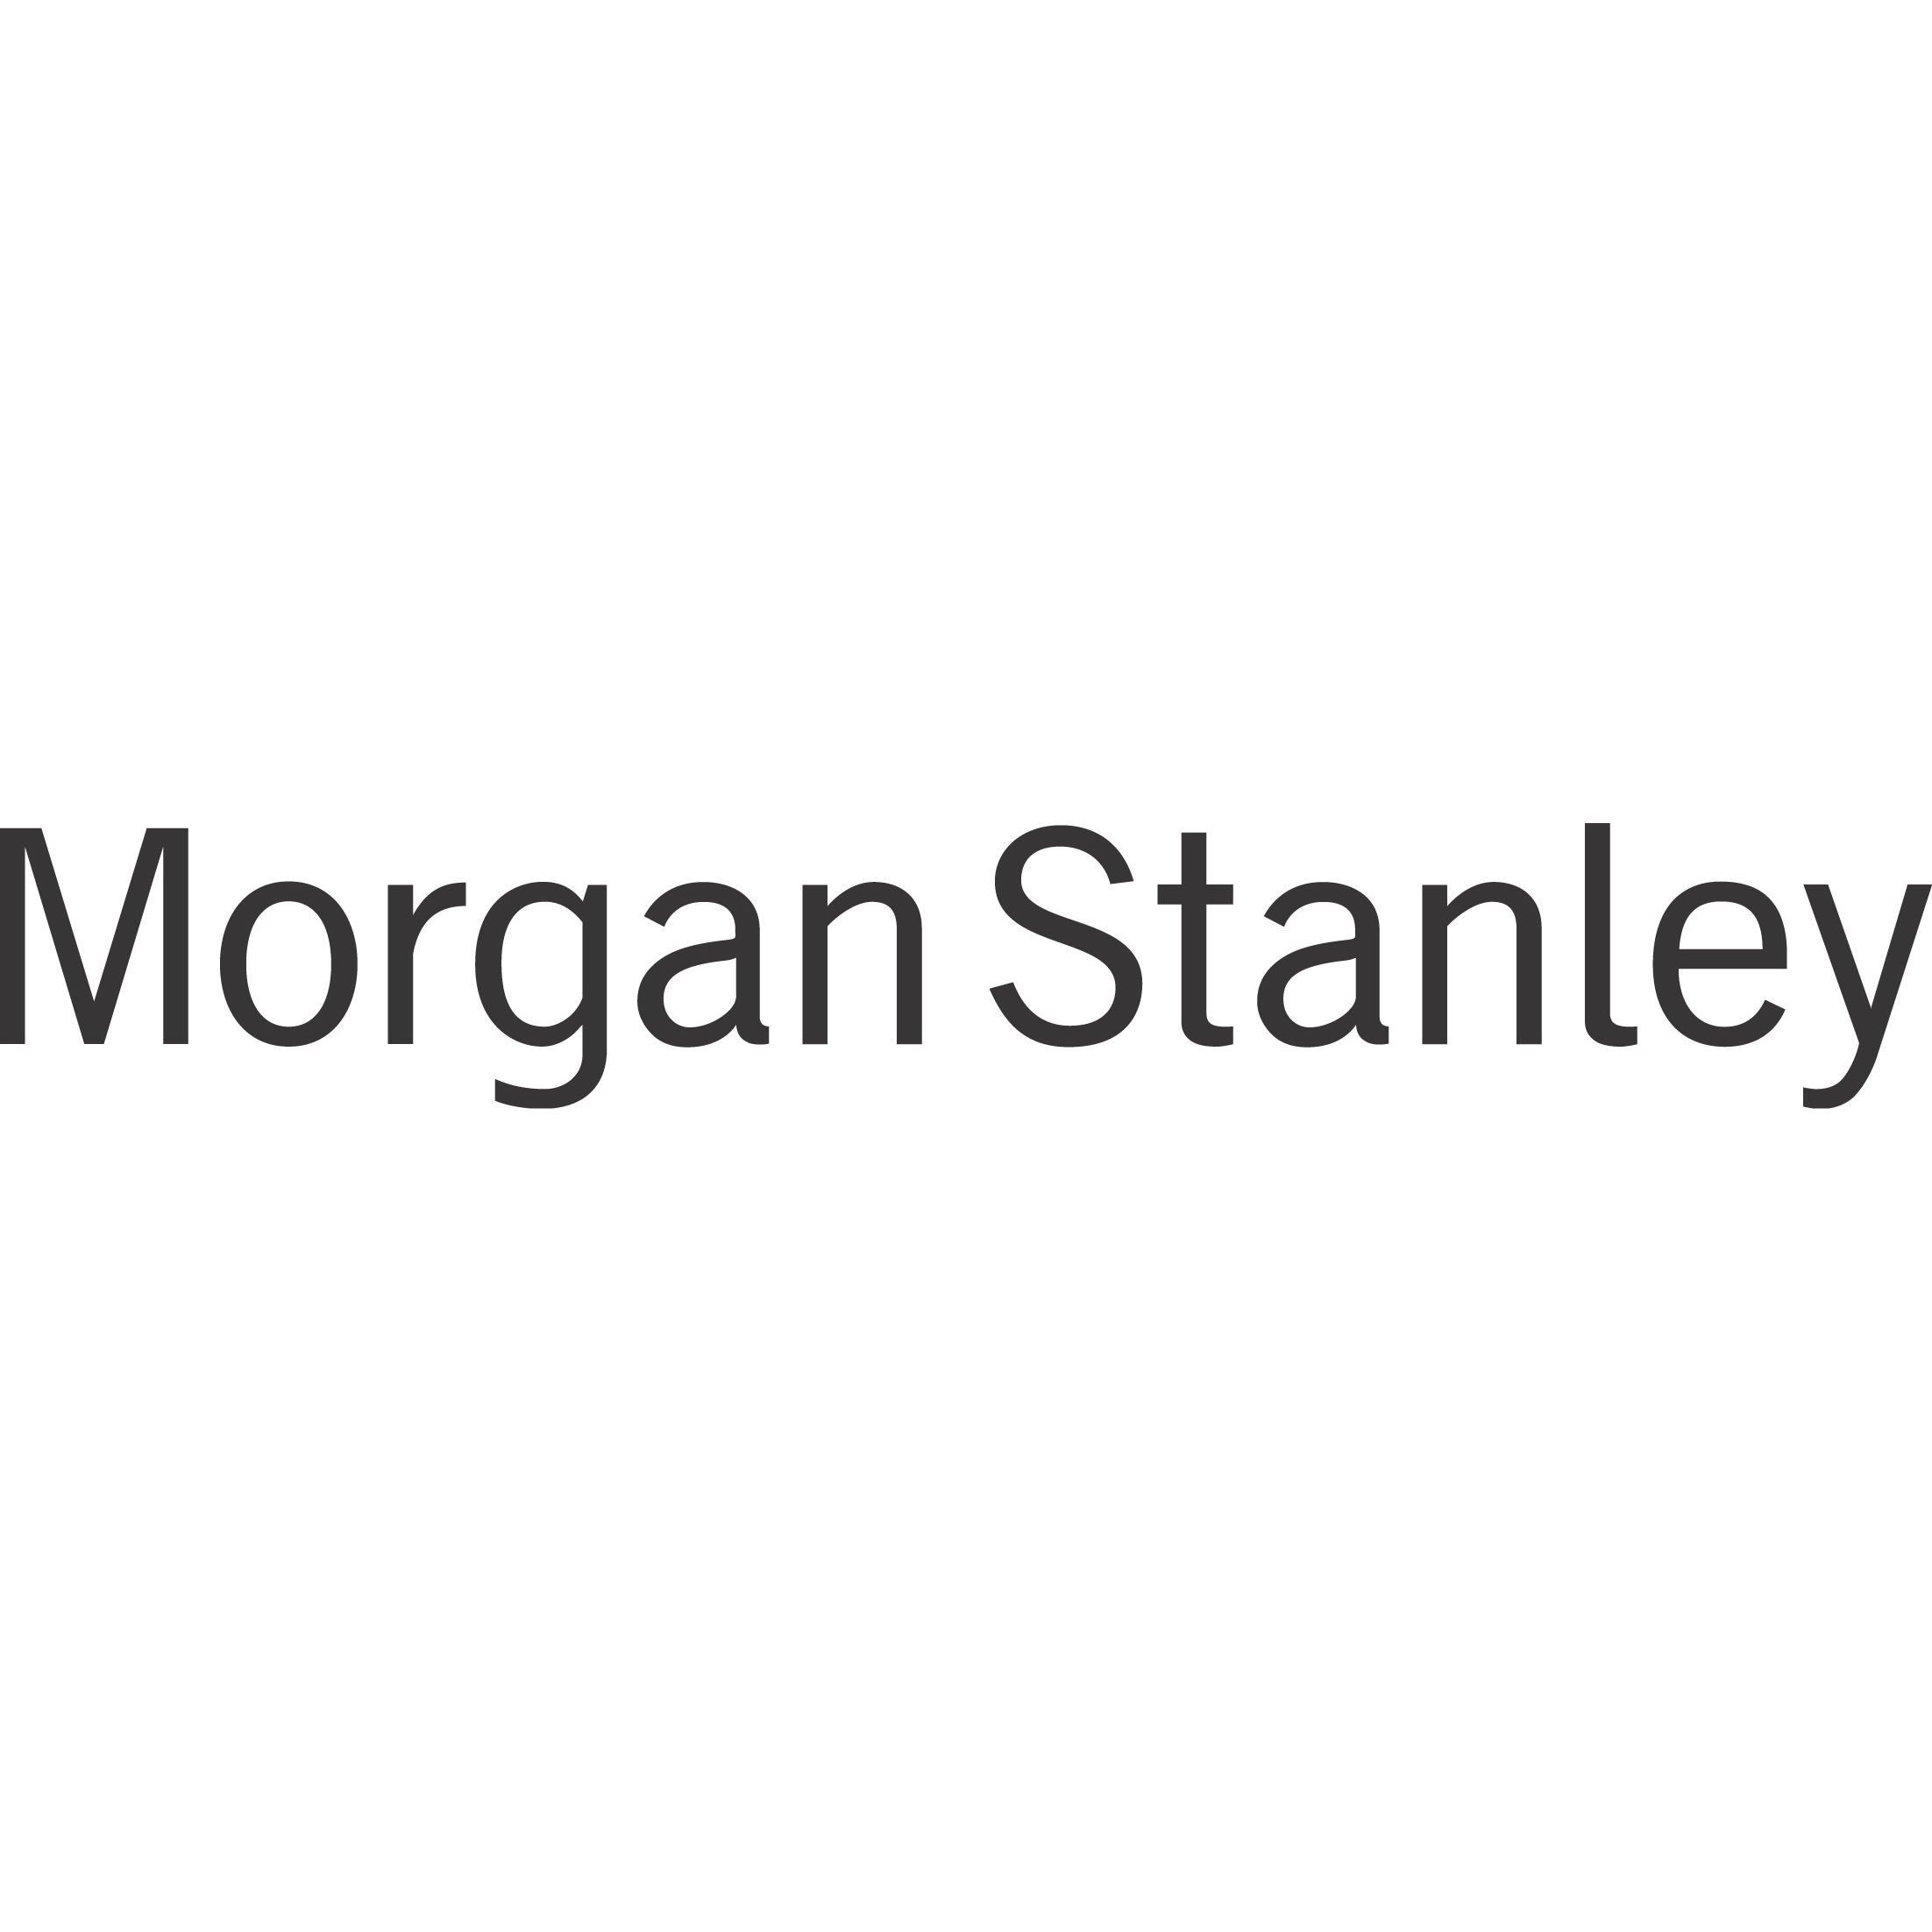 Thomas Cifelli - Morgan Stanley